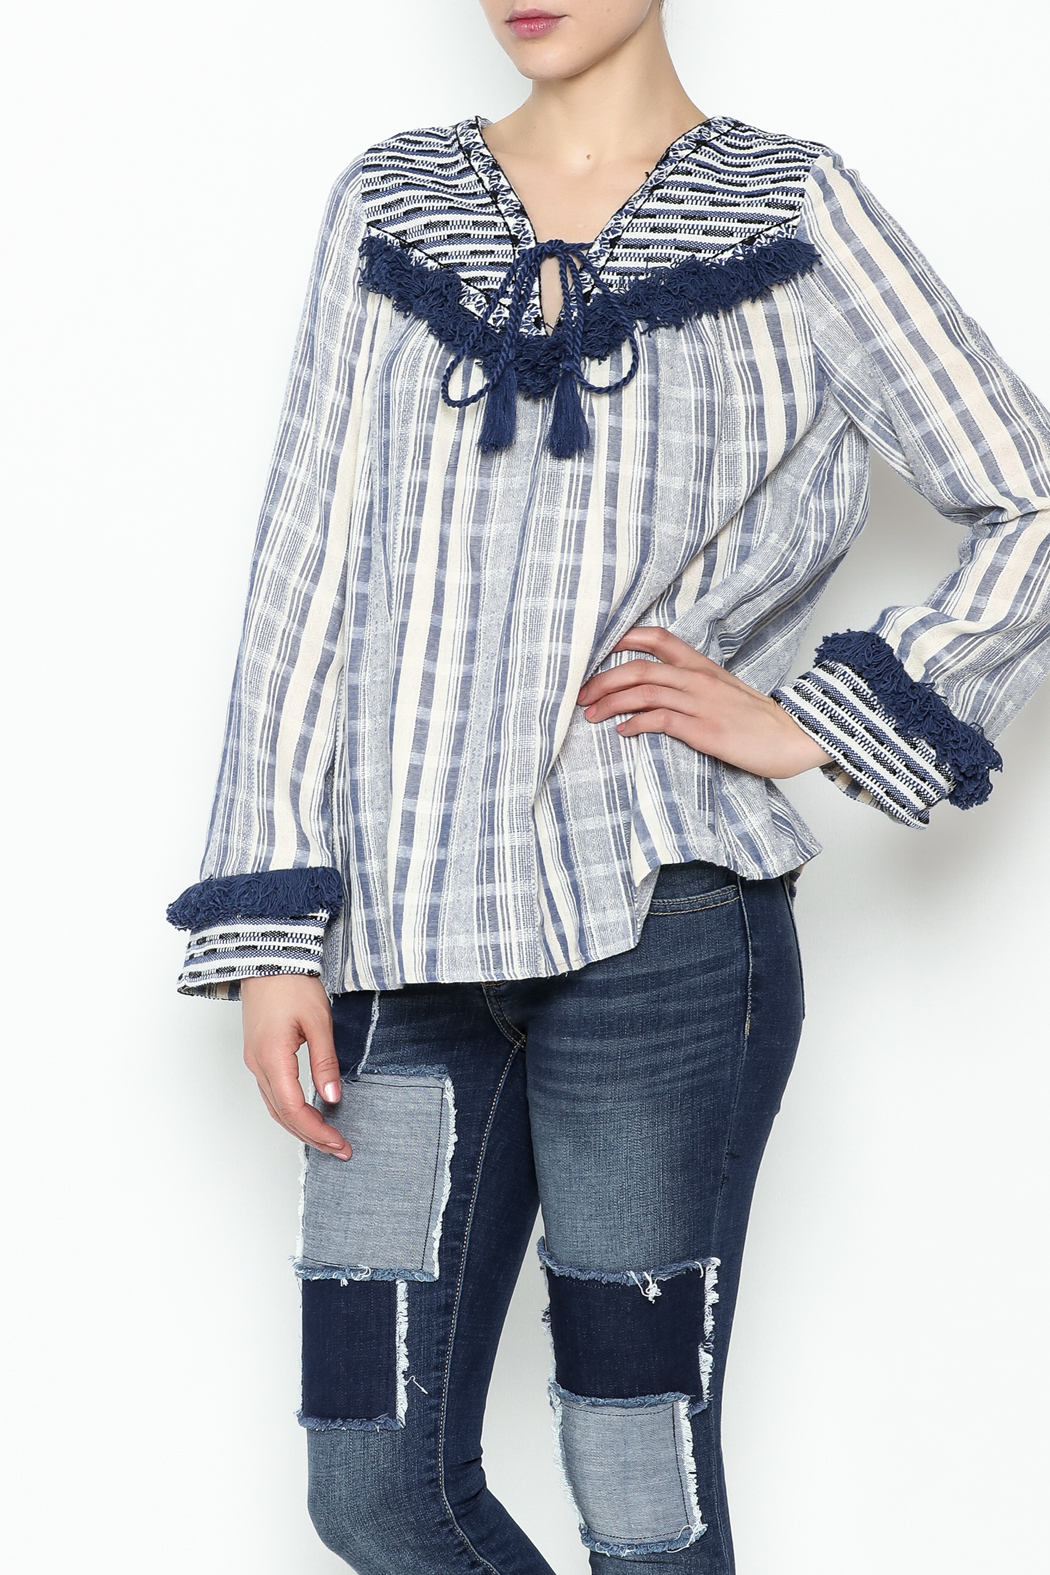 Sugar Lips Margot Stripe Knit Top - Main Image